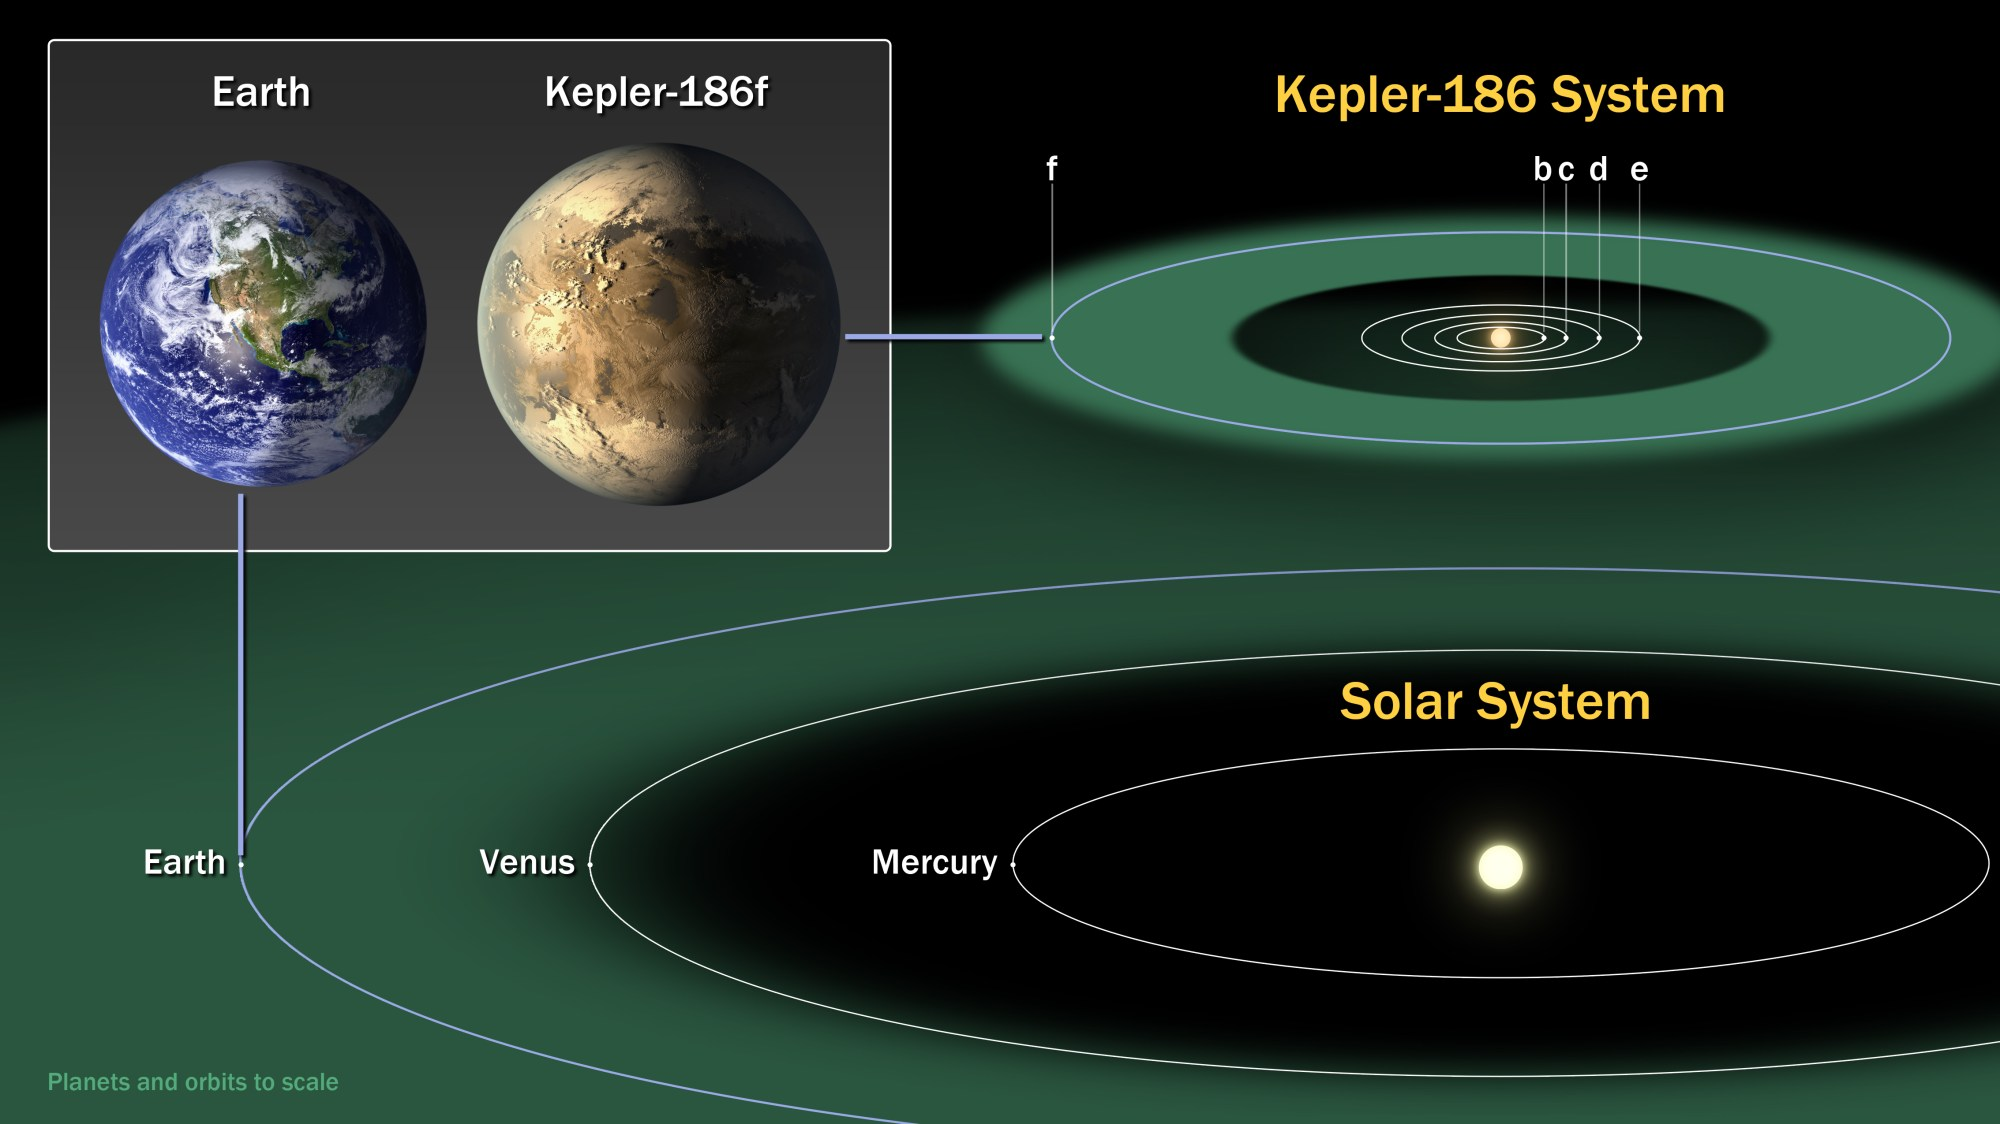 hight resolution of the diagram compares the planets of our inner solar system to kepler 186 a